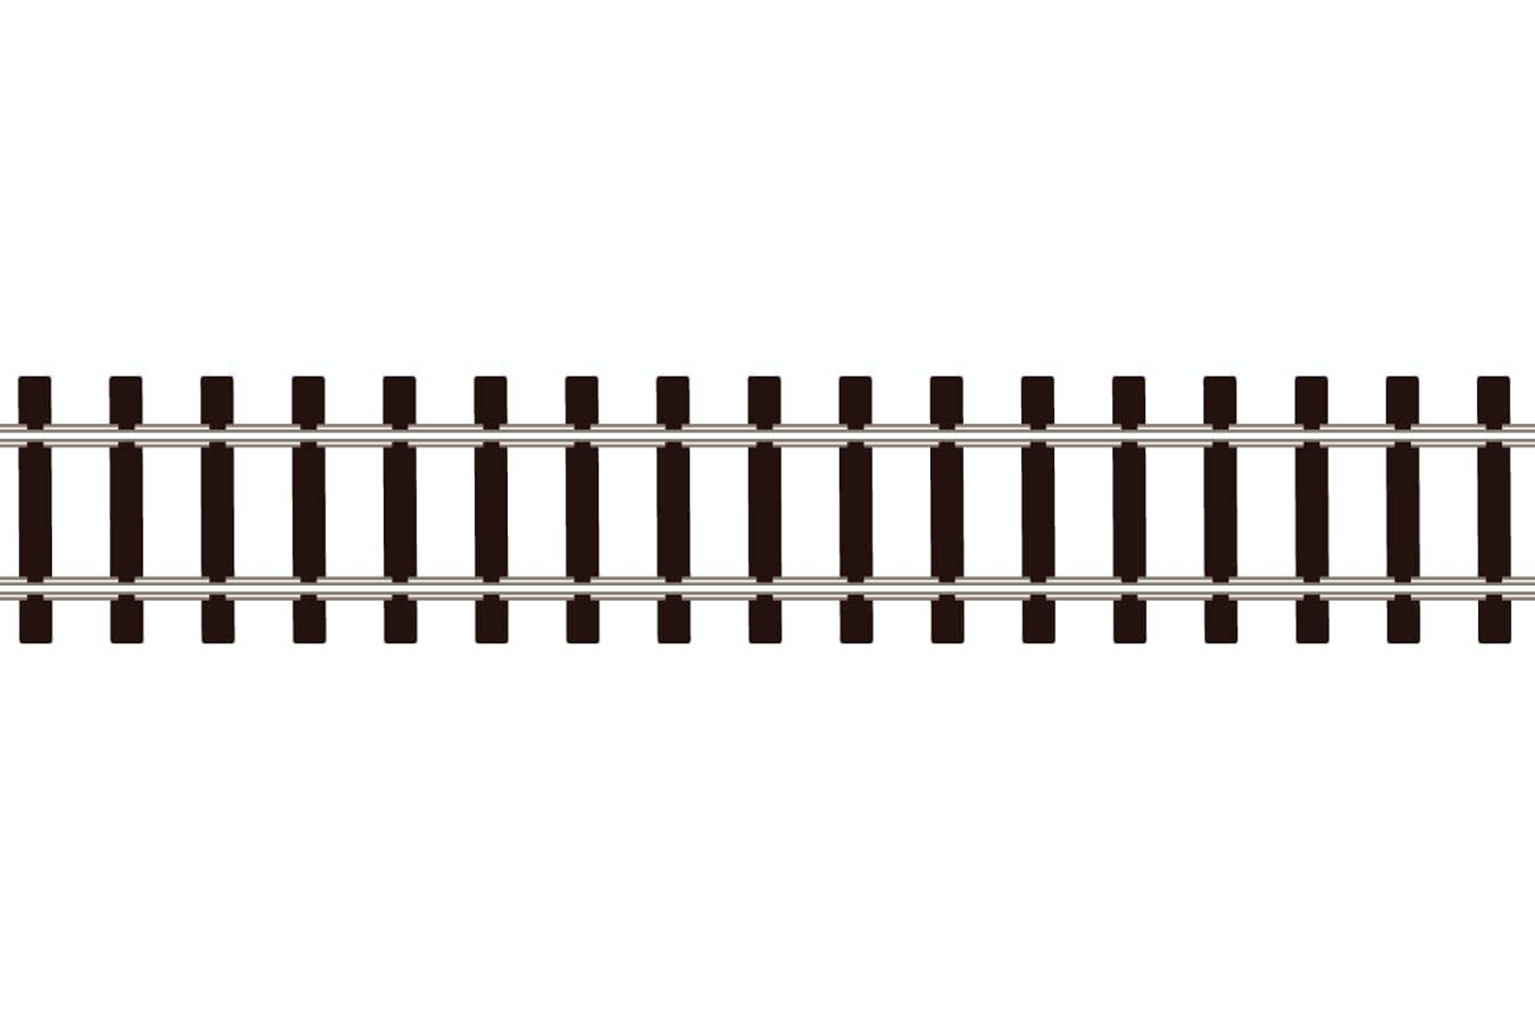 SL300 25 Yards code 80 Nickle Silver Flexible Track with Wooden Type Sleepers